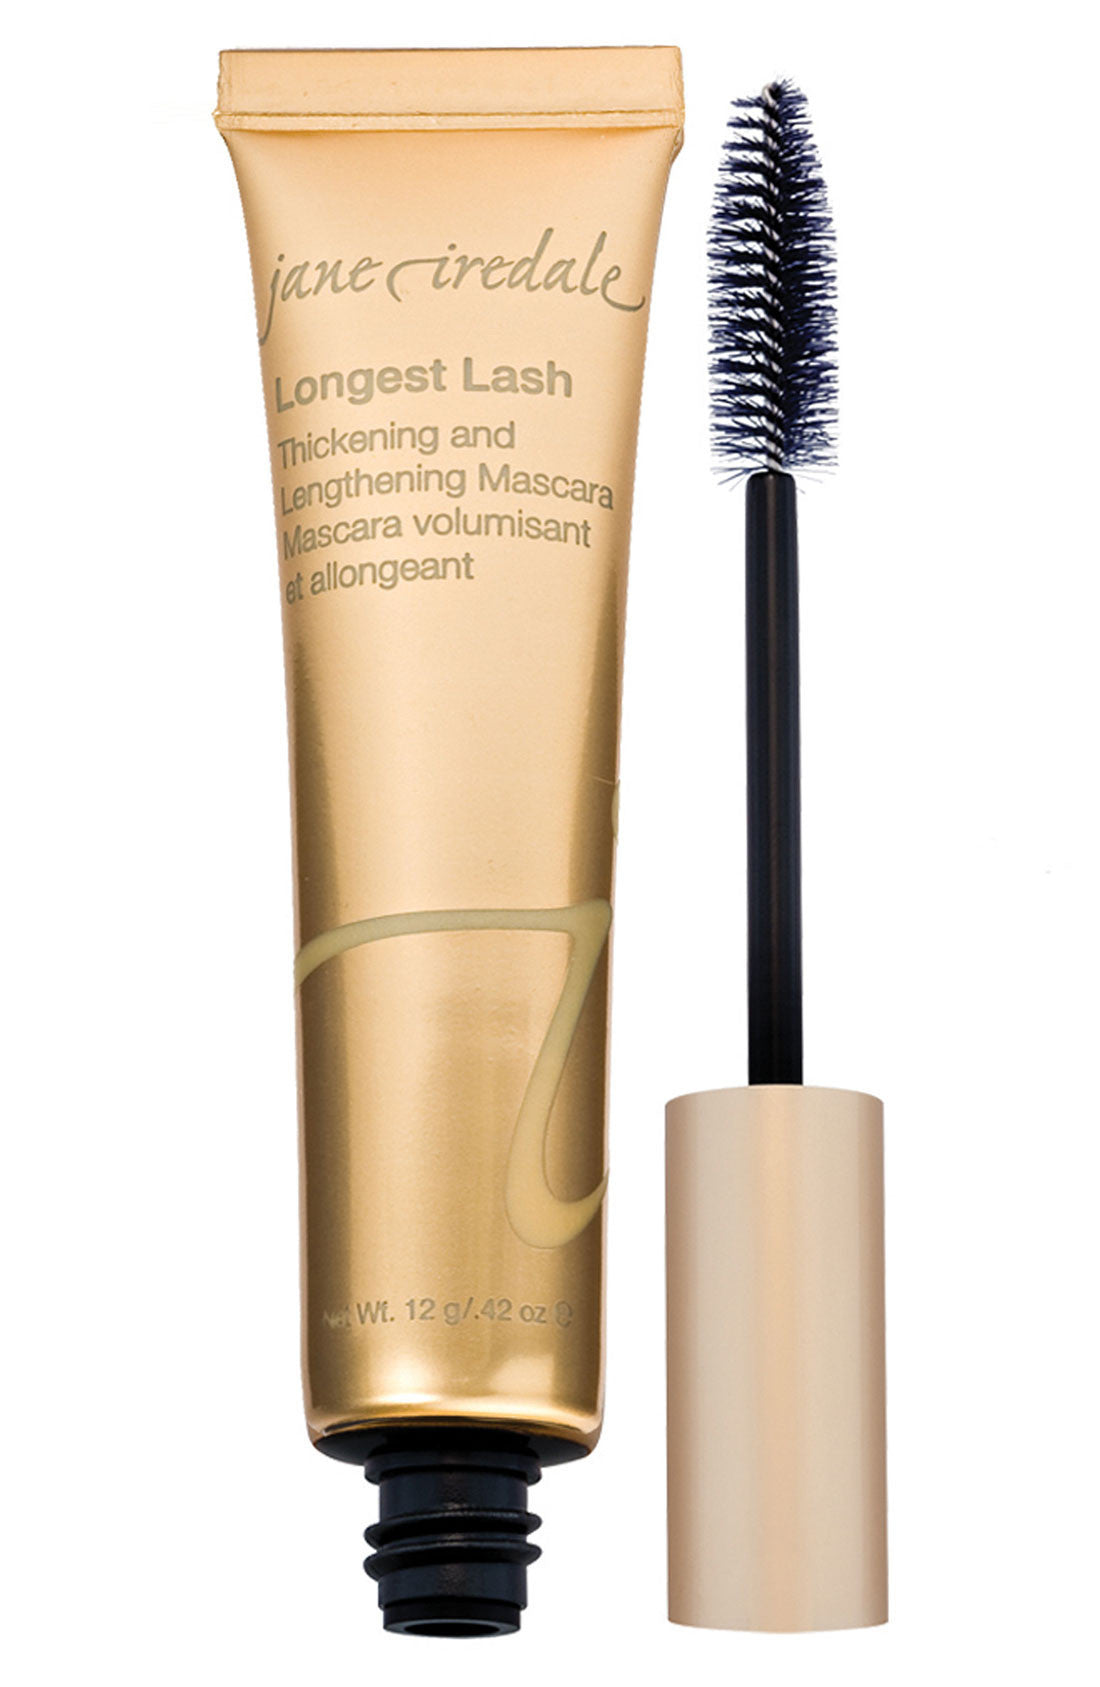 Jane Iredale Longest Lash Mascara - Black Ice, .42 oz